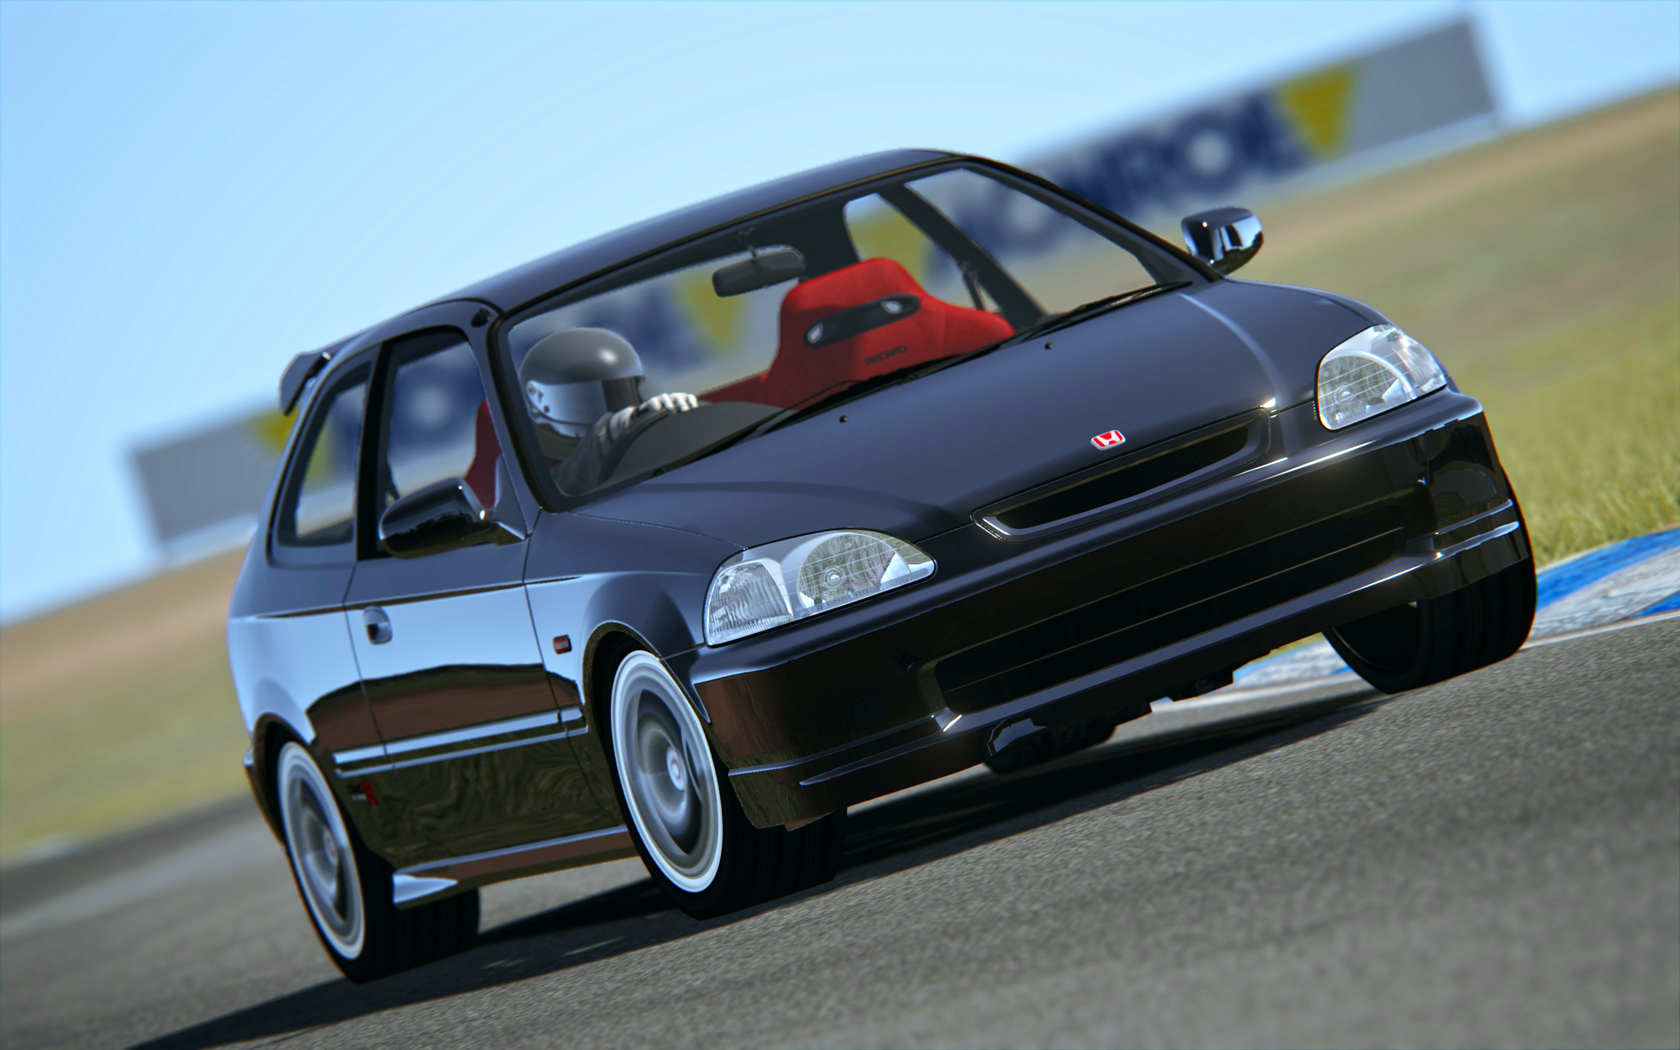 Civic Type R - Assetto Corsa